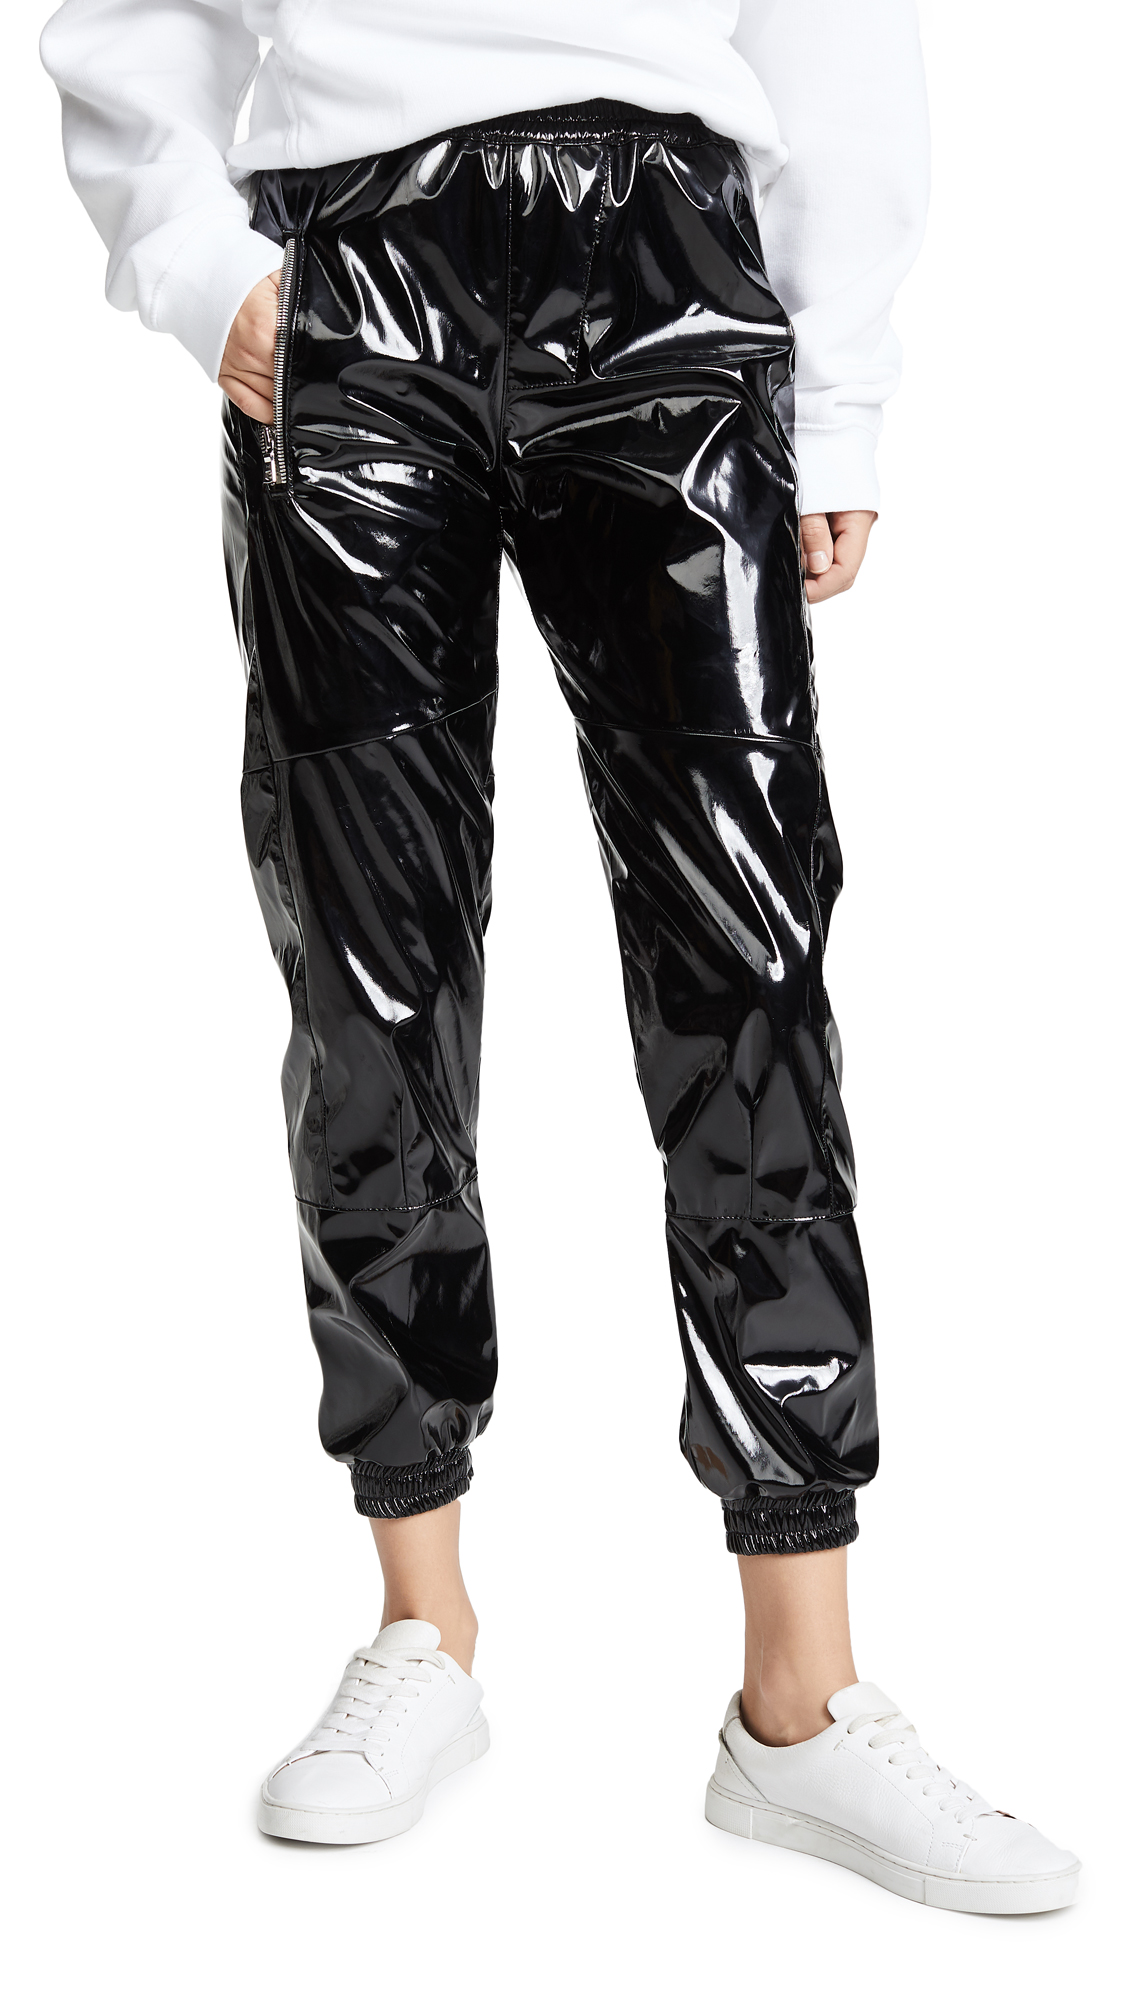 Finn Patent Ankle Track Pants in Black